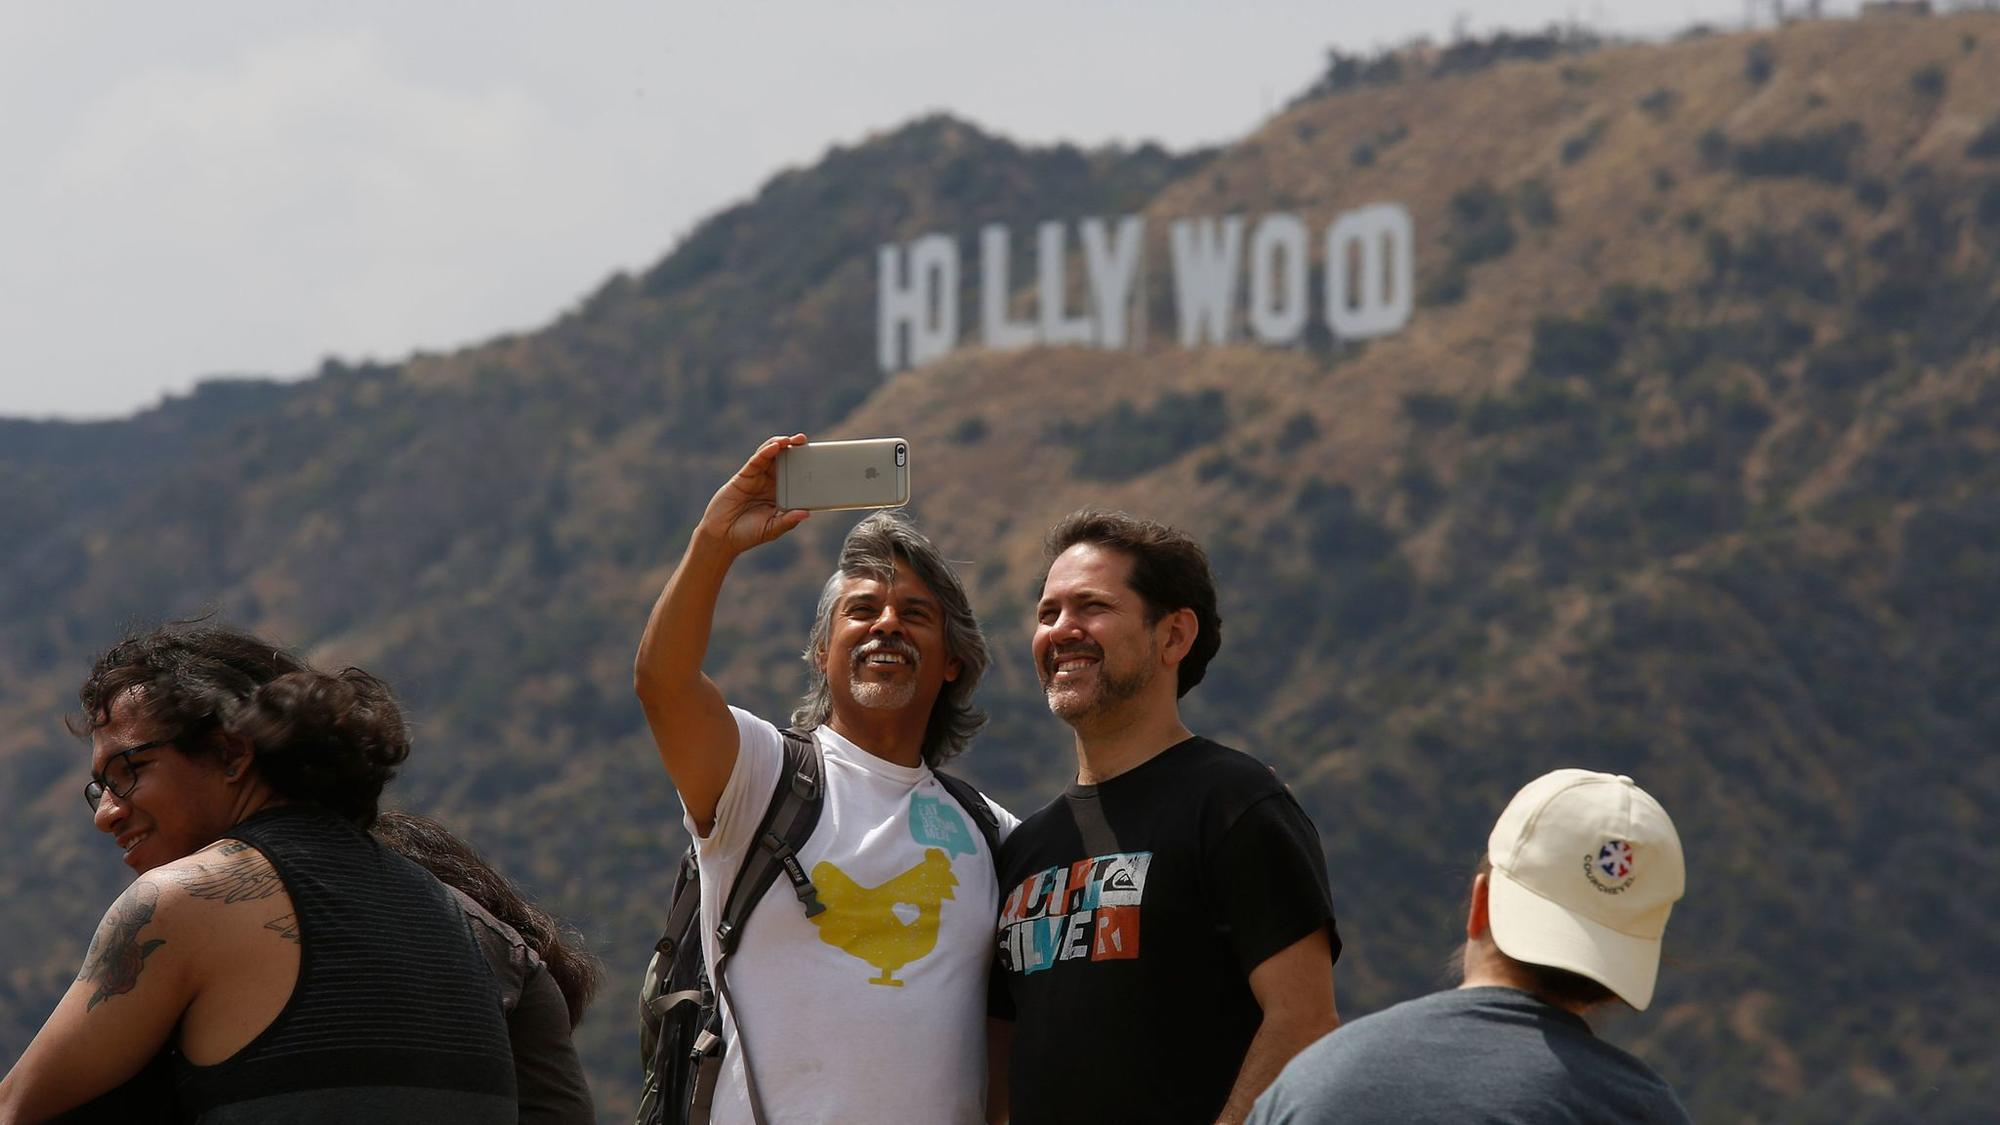 Treat the Hollywood Sign like the tourist attraction it is